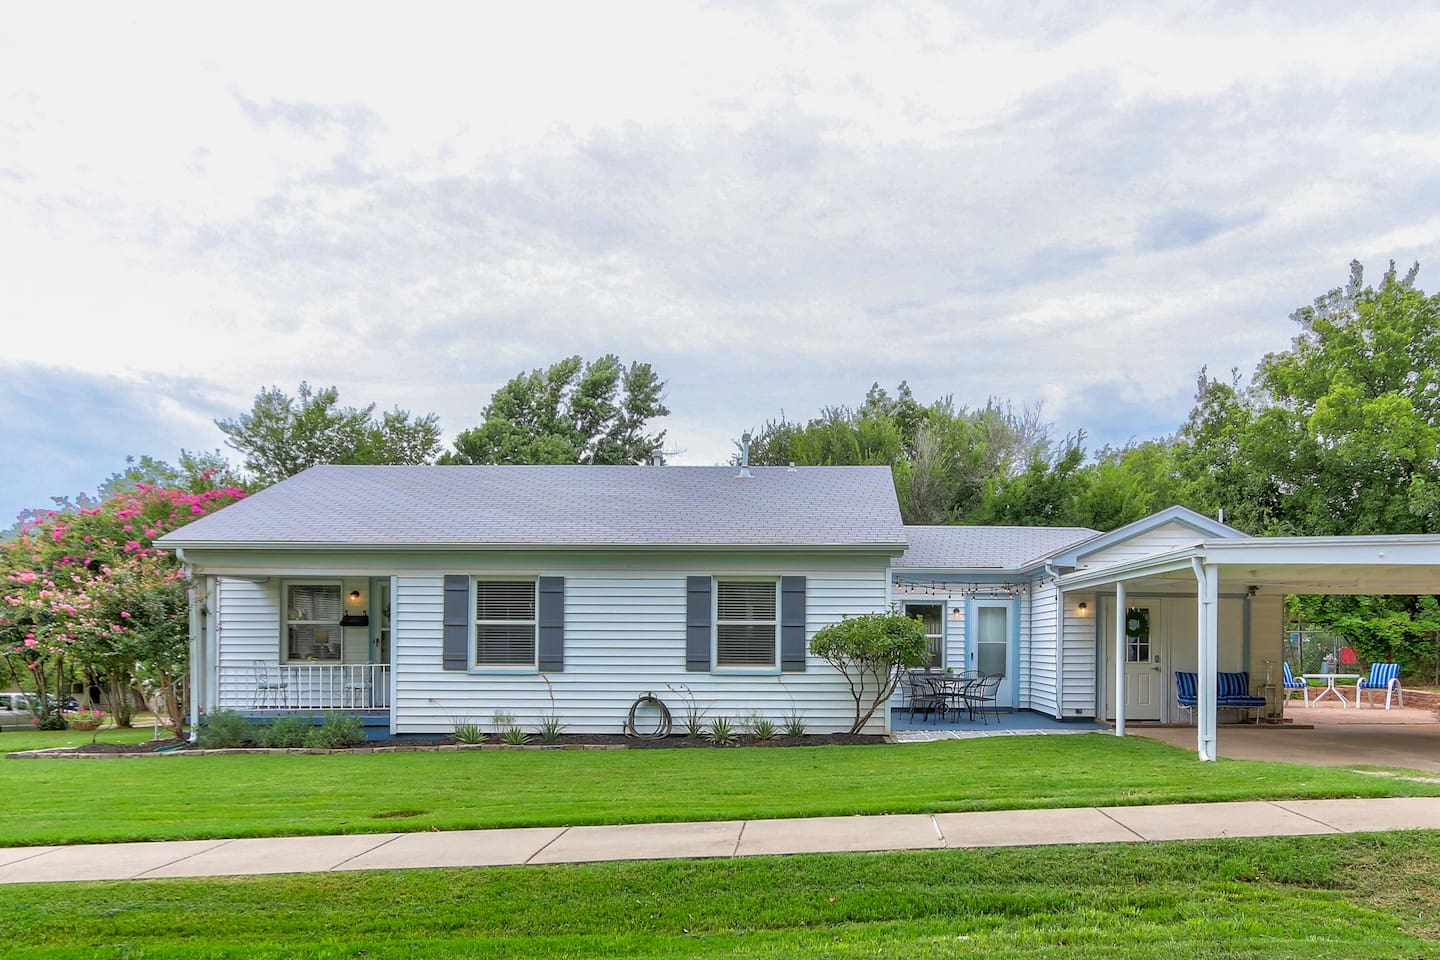 Amazing Bungalow with updated exterior to match gorgeous interior!